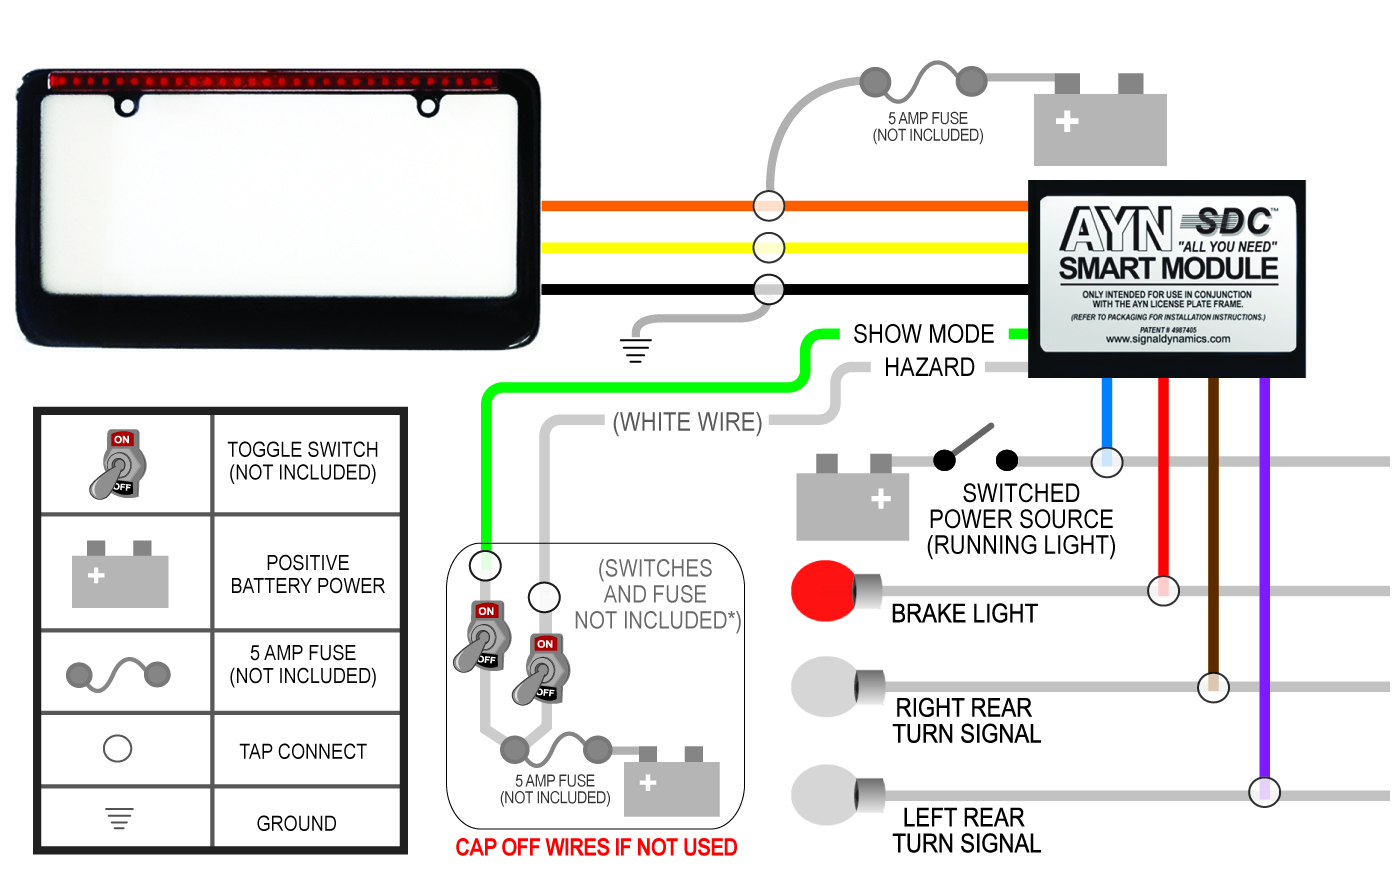 black auto wiring diagram?t=1399476781 black ayn automotive license plate frame & smart module combo Basic Turn Signal Wiring Diagram at nearapp.co